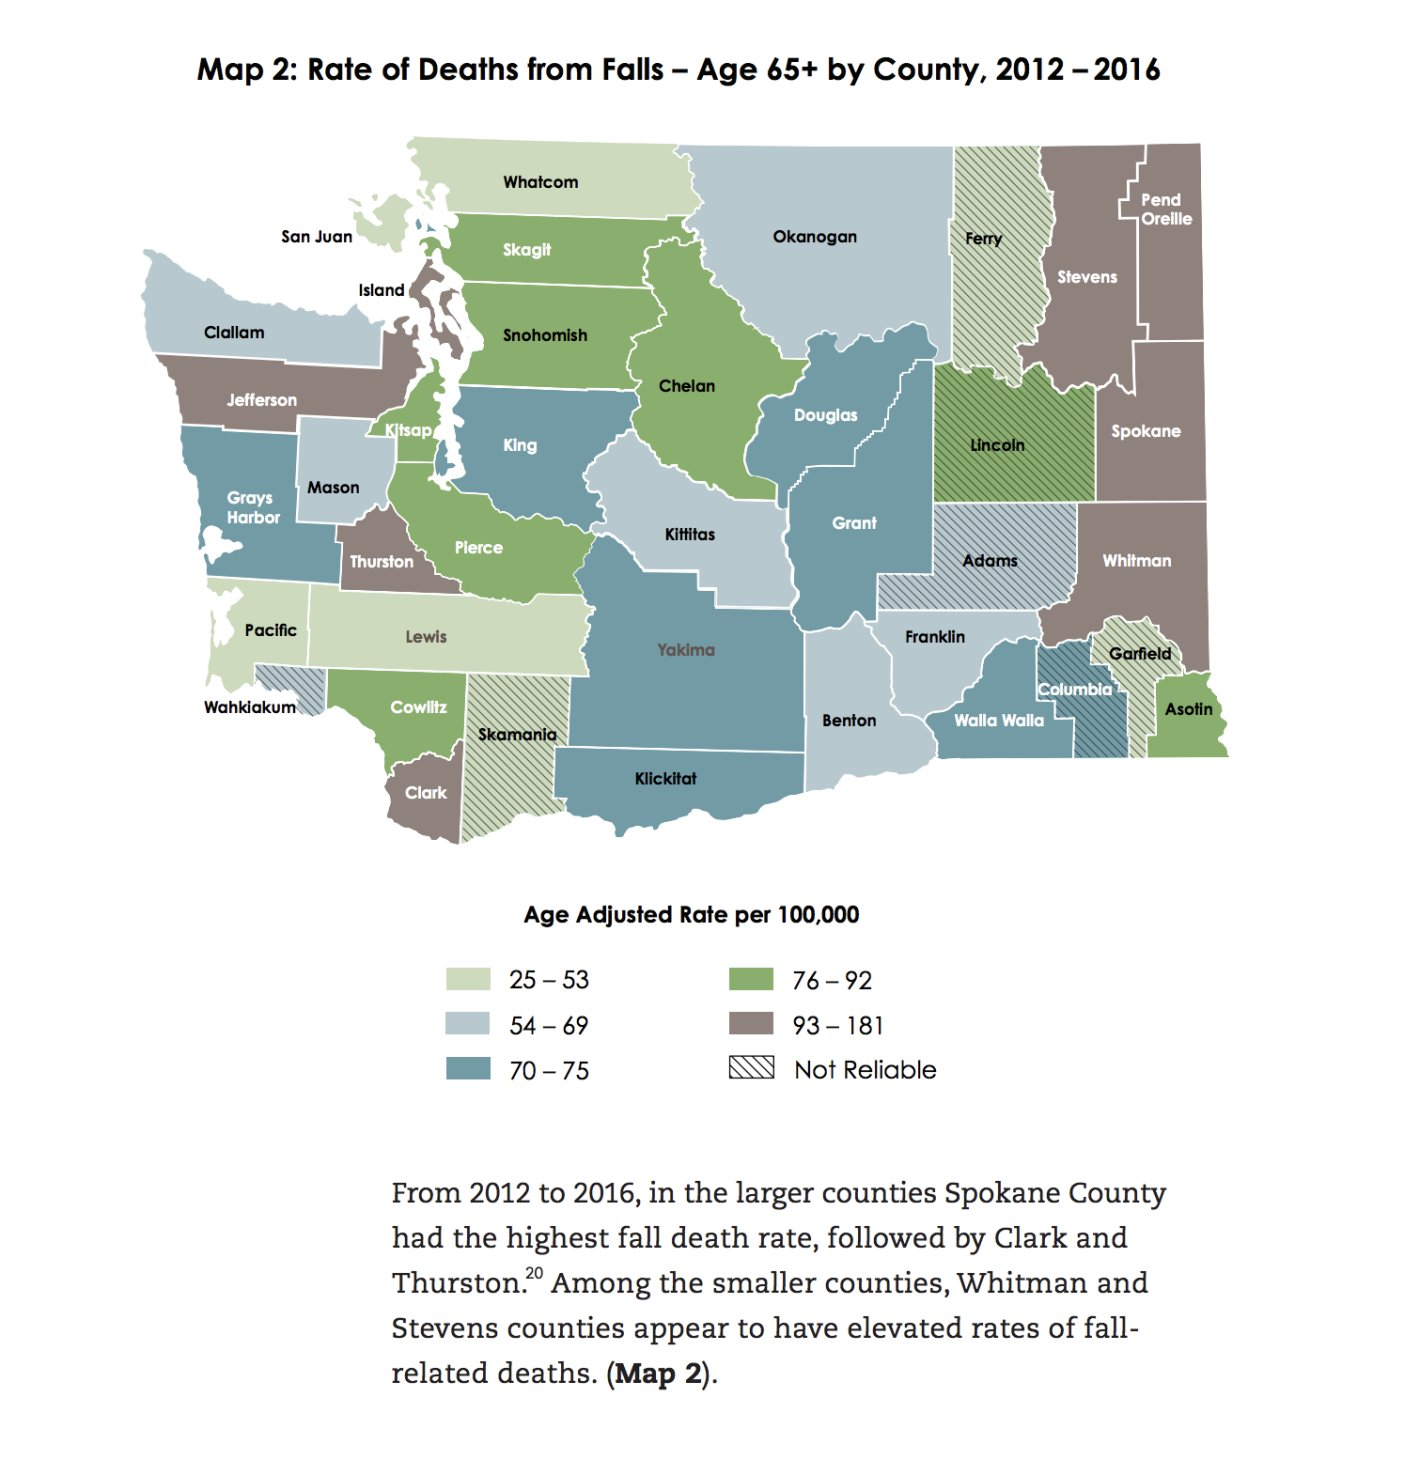 From 2012 to 2016, in the larger counties, Spone County had the highest fall death rate, followed by Clark and Thurston. Among the smaller counties, Whitman and Stevens counties appear to have elevated rates of fall-related deaths. Courtesy photo